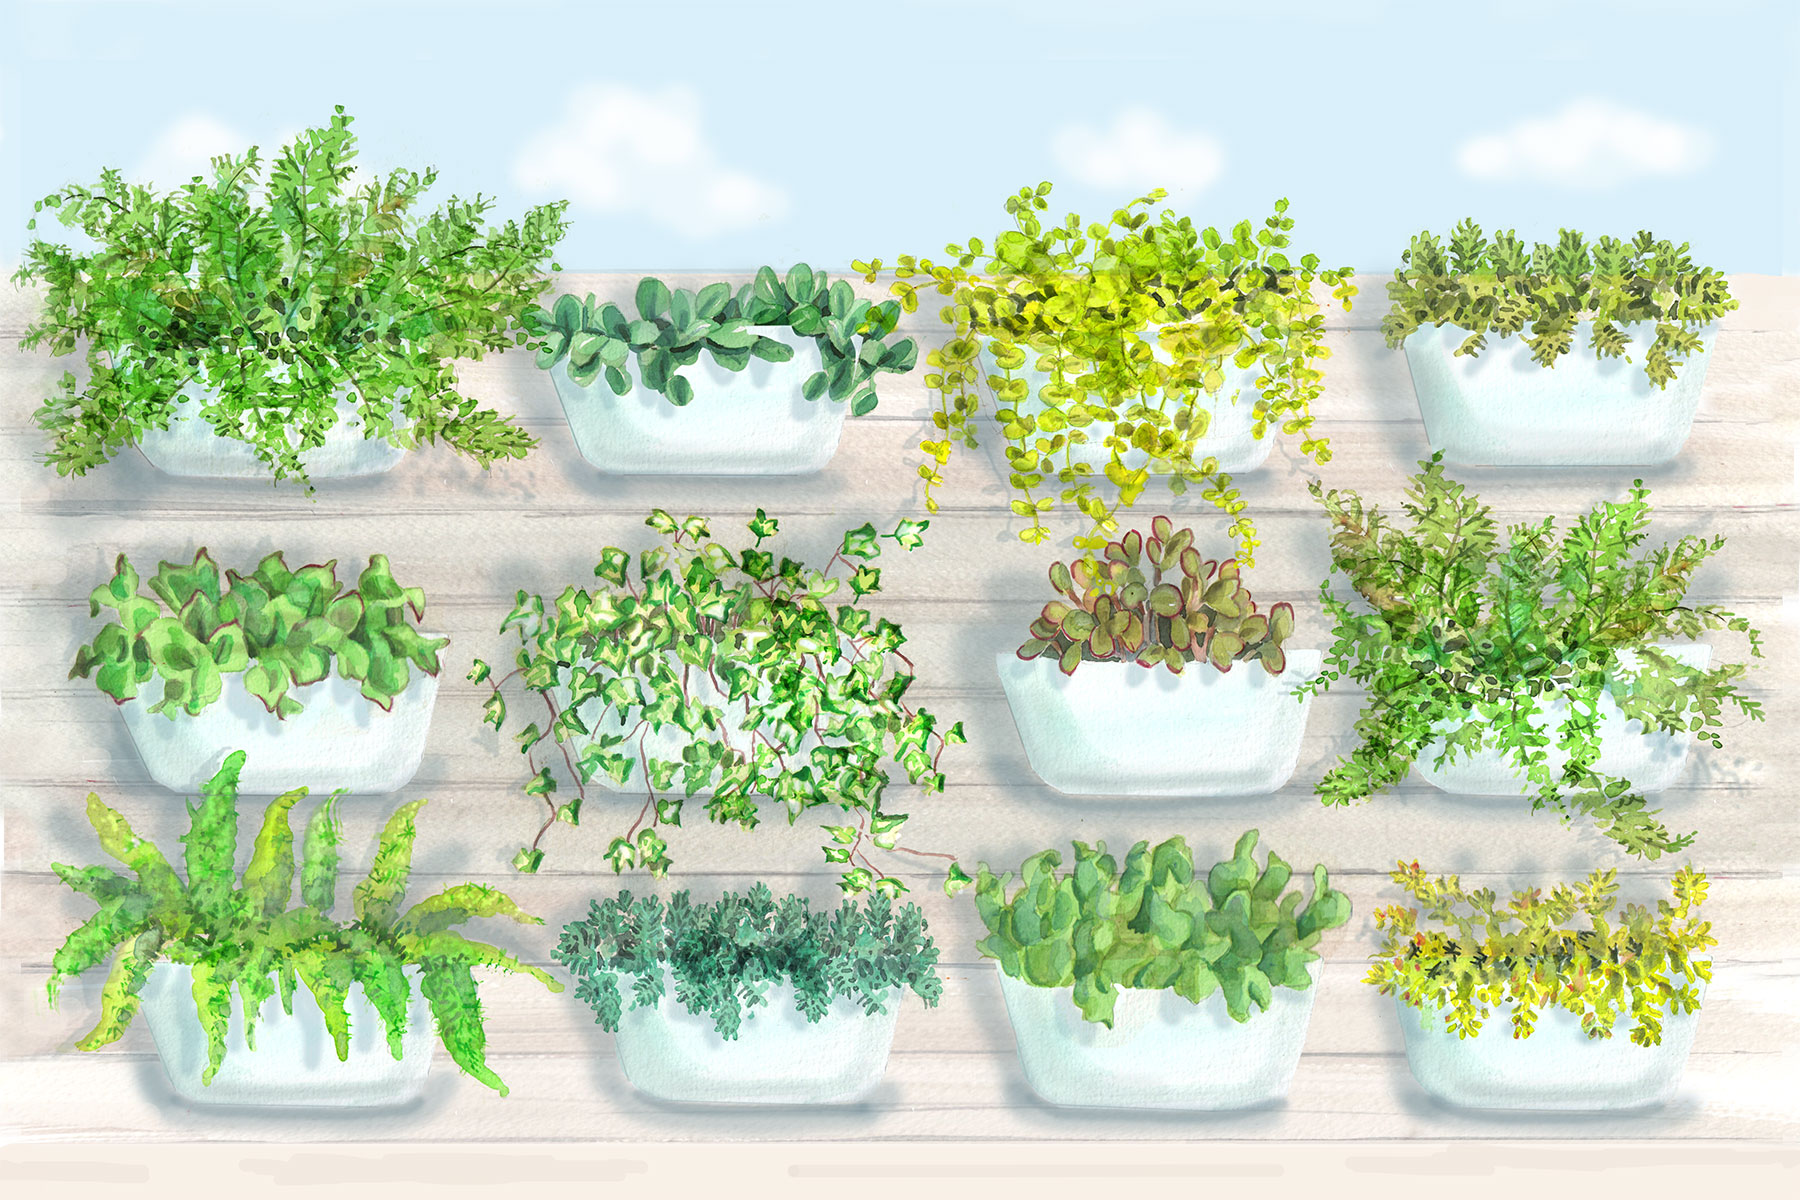 167 & 4 Container Garden Ideas That Are Fail-Proof   Real Simple